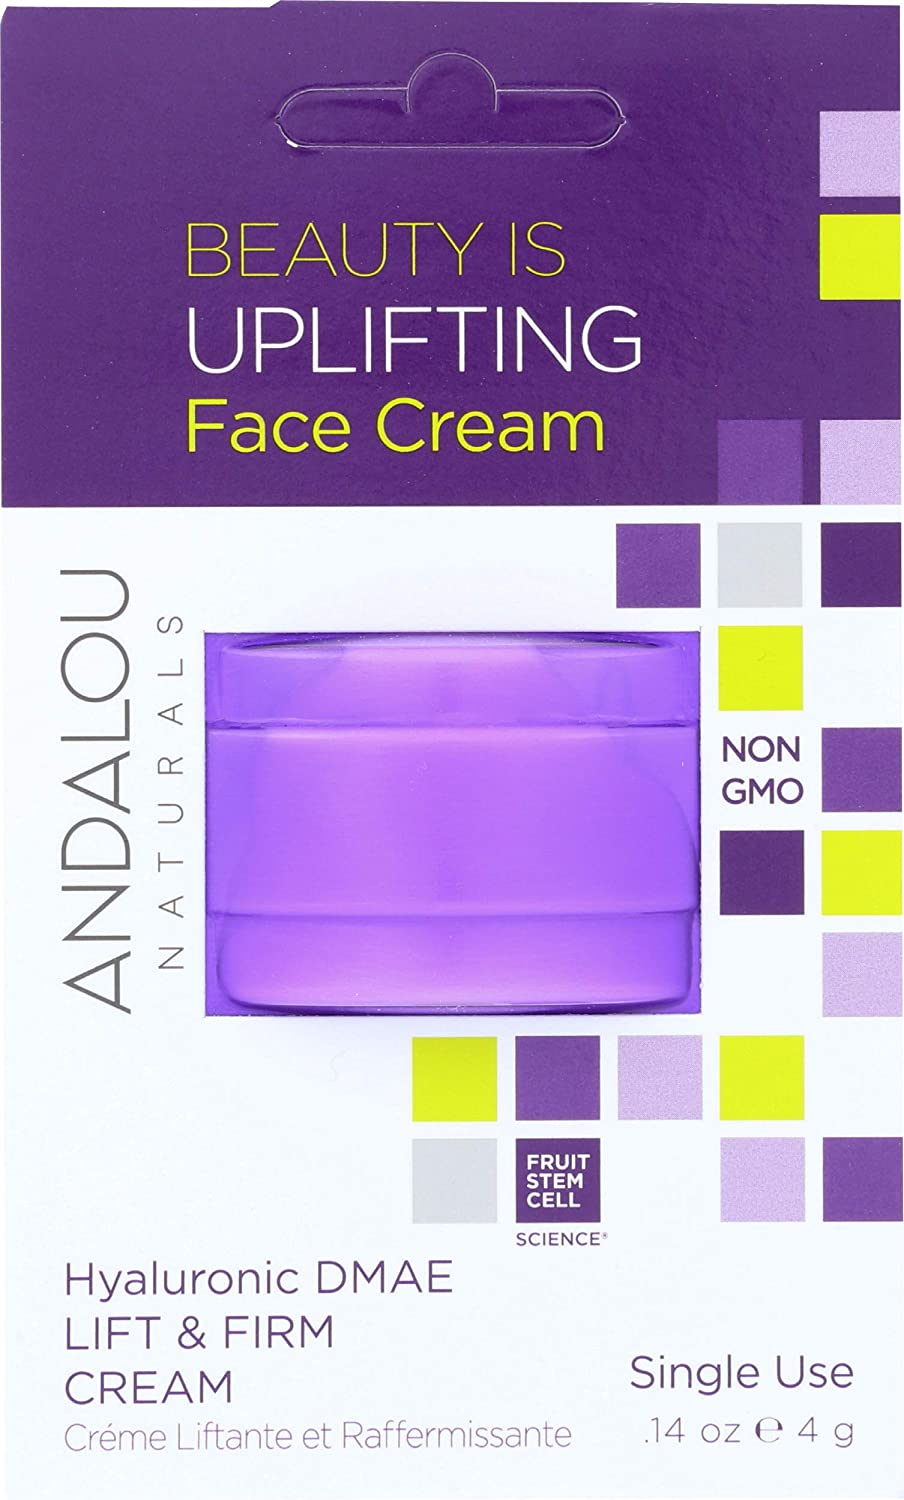 Face Cream Uplifting Pound Selling rankings 2.5 Animer and price revision pod